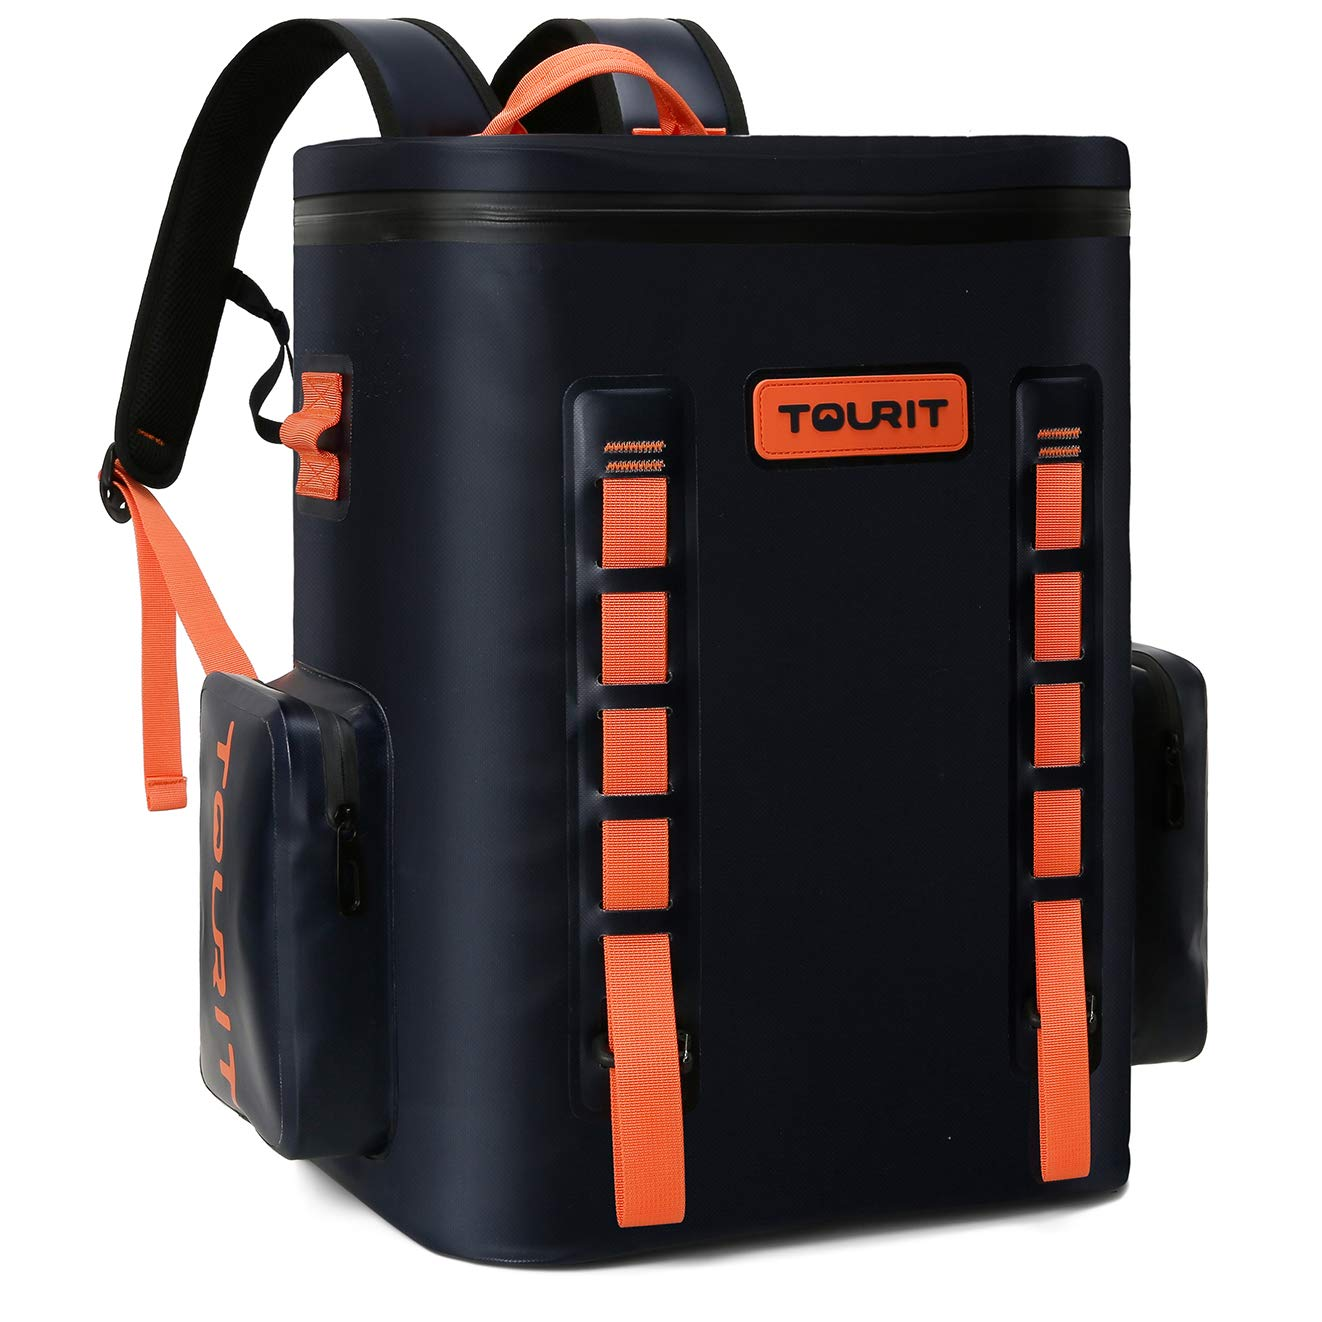 TOURIT Leak-Proof Soft Sided Cooler Backpack Best Backpack Coolers